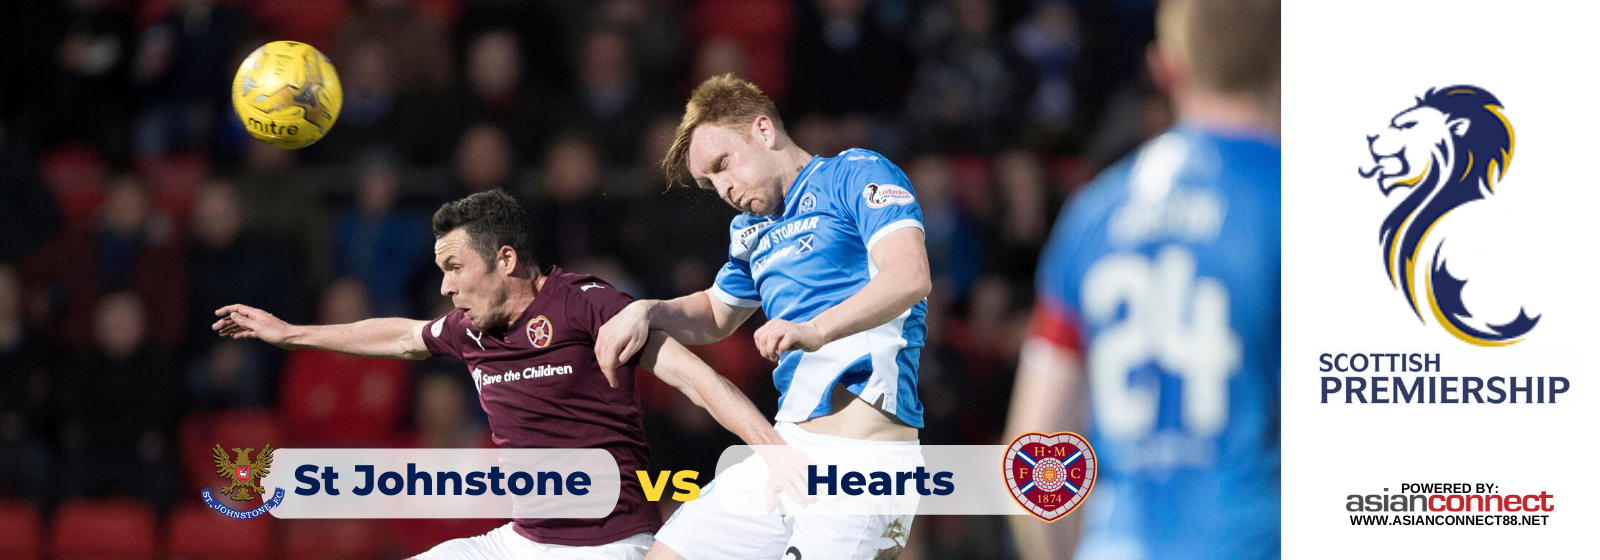 Asianconnect: St Johnstone vs Hearts Odds for February 01, 2020